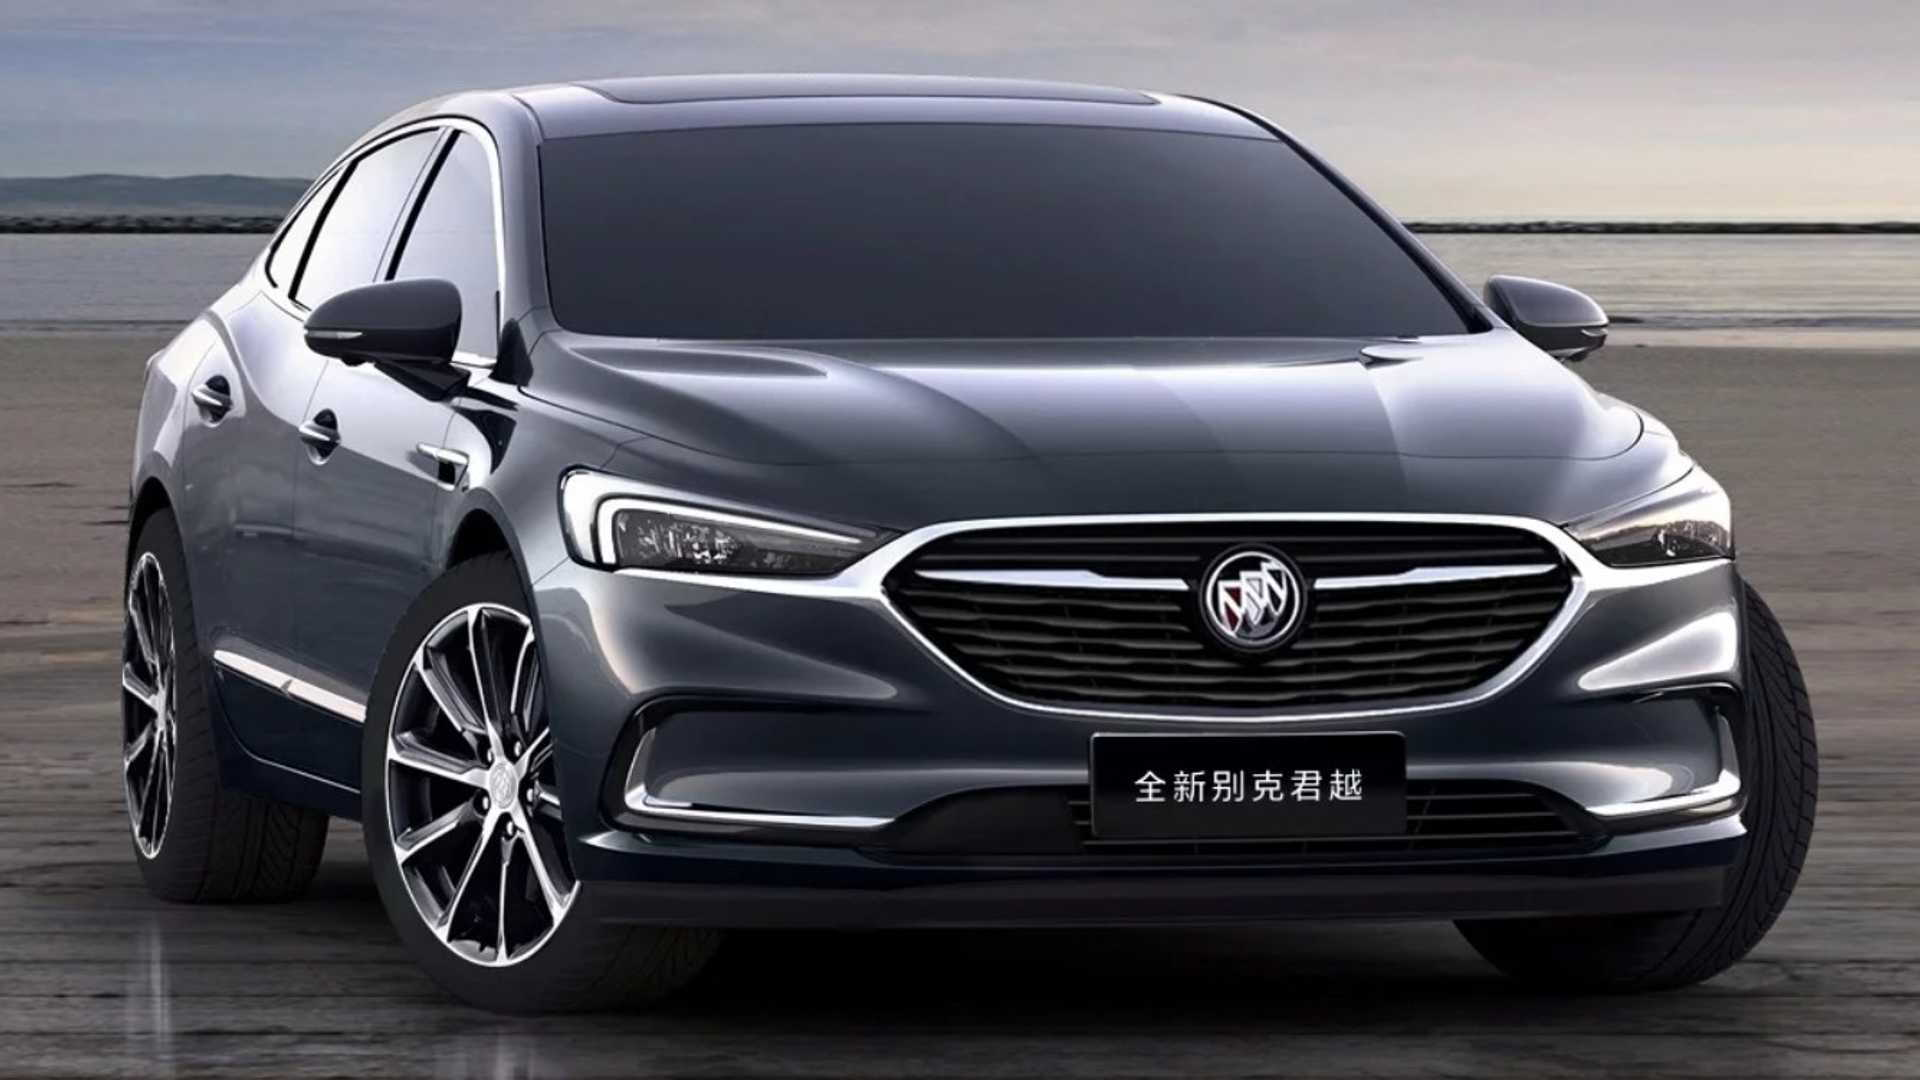 2020 Buick LaCrosse (Chinese spec)